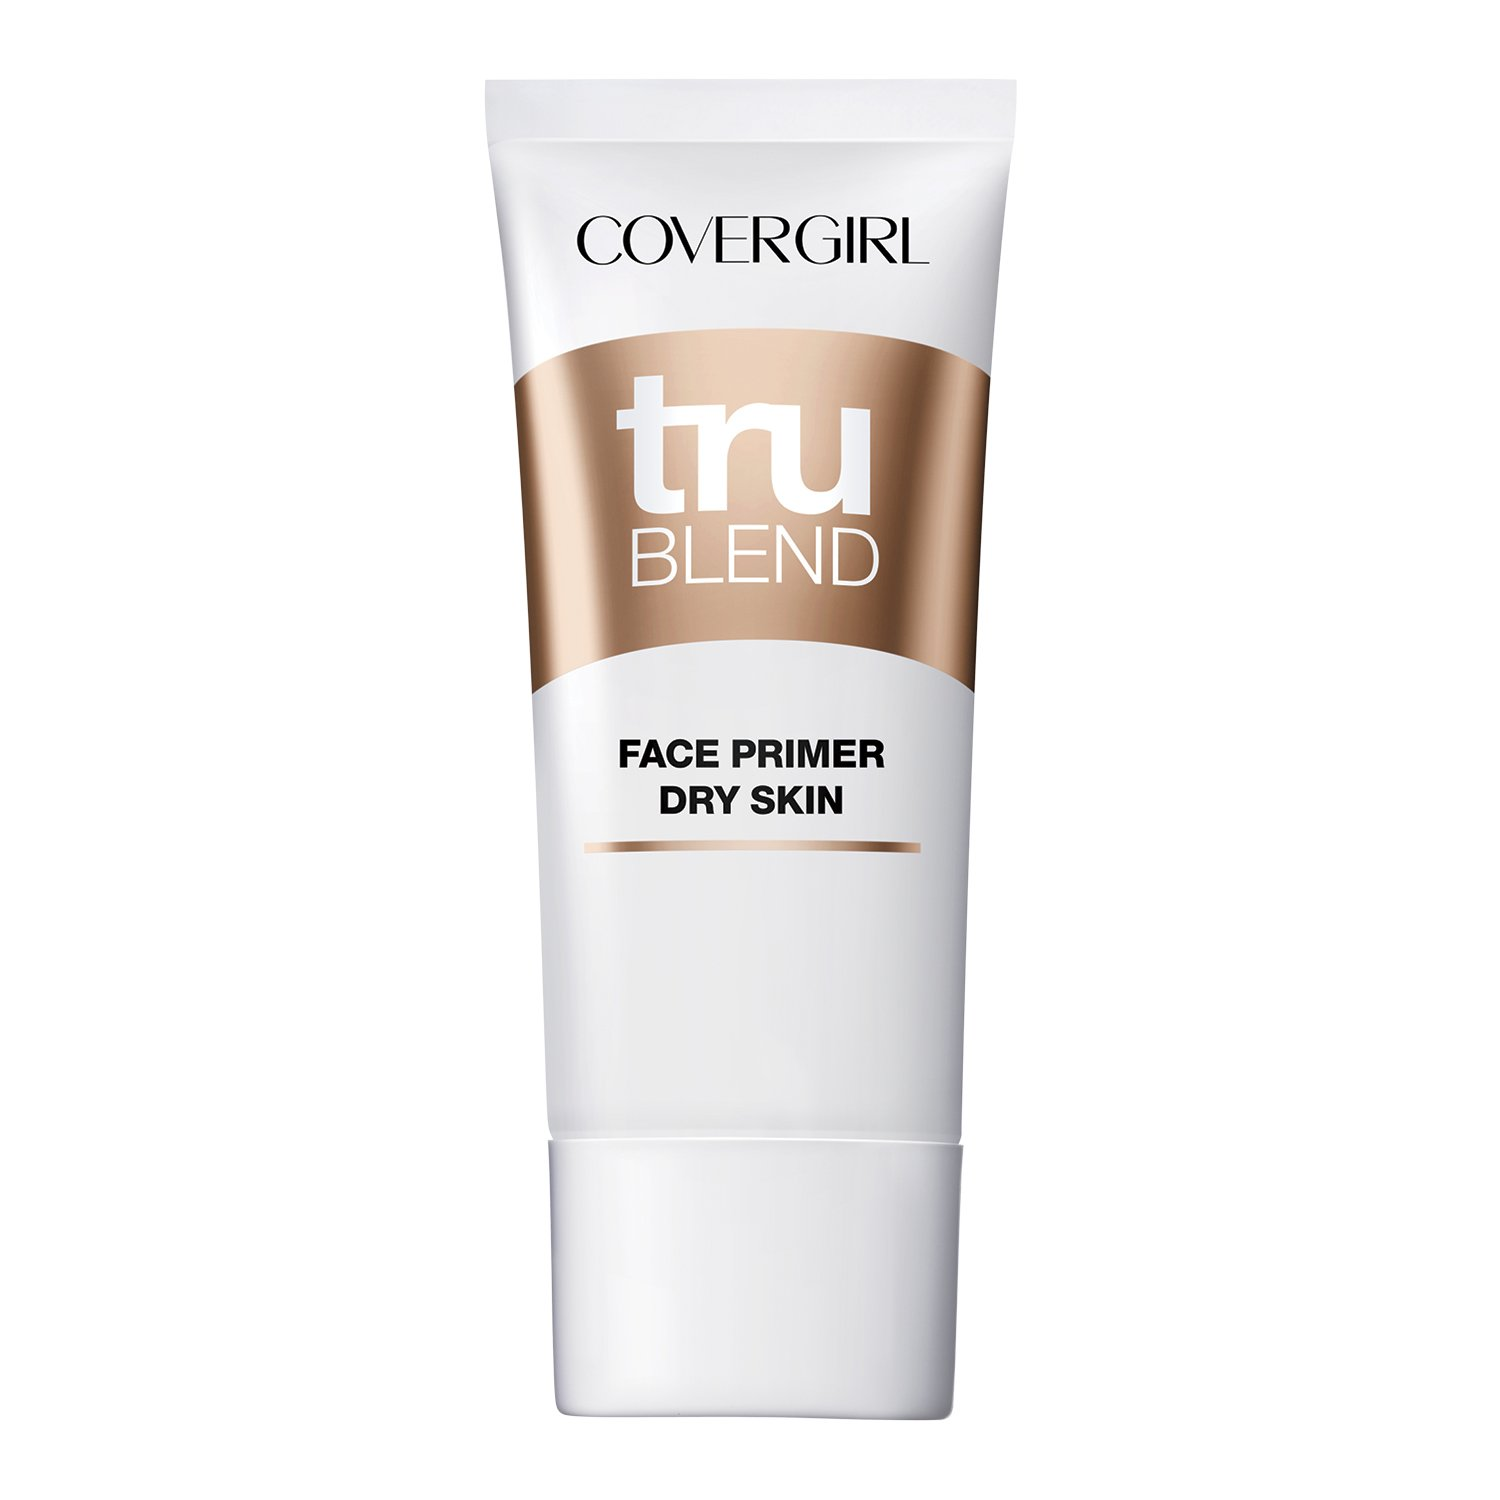 COVERGIRL truBLEND Primer (Packaging May Vary) Coty 80274745